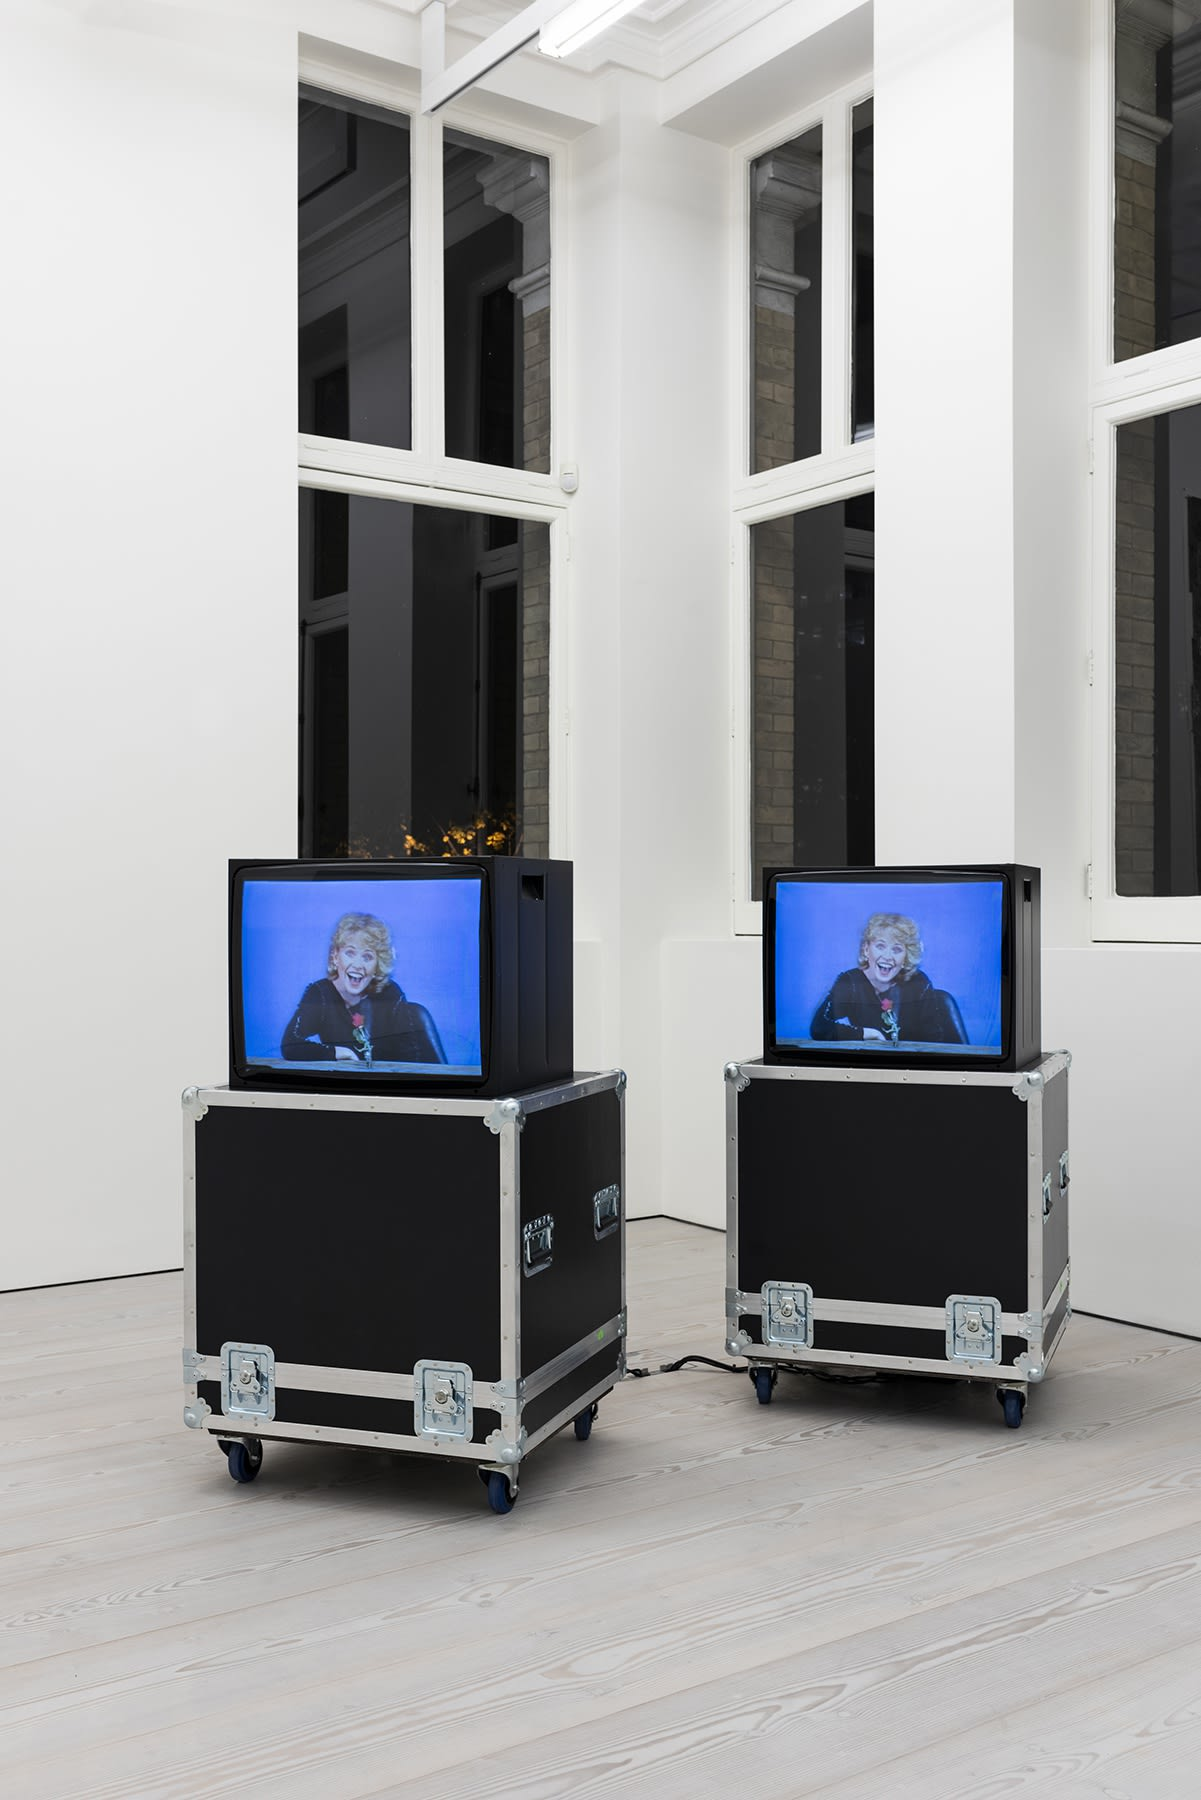 2 T.V. monitors display a woman laughing, in the corner of a white room in front of windows at night.